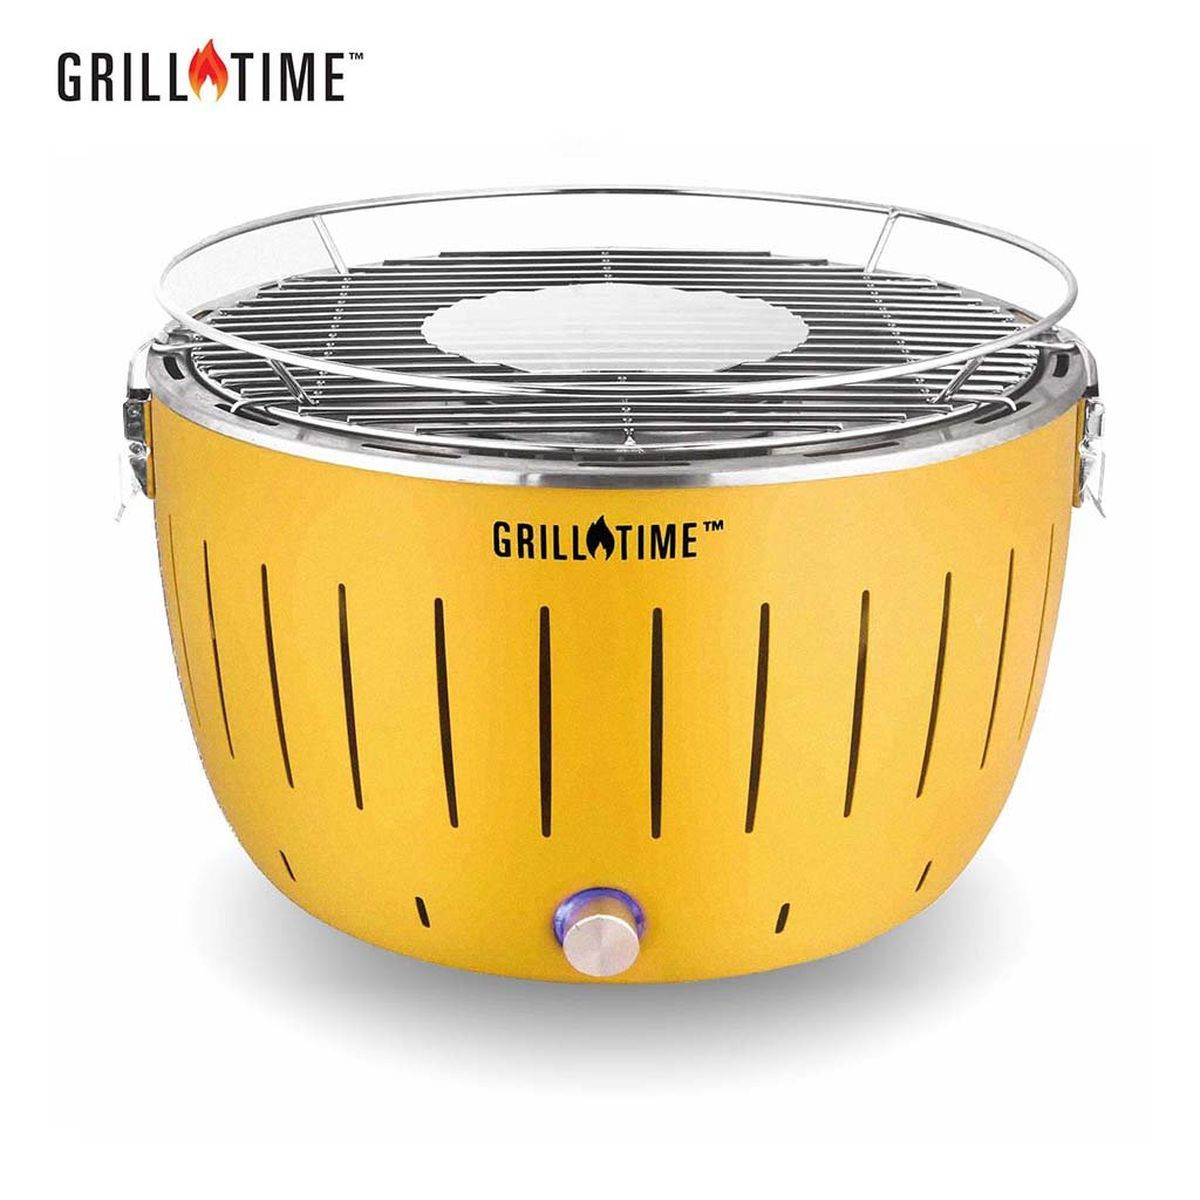 Grill Time Tailgater GT Regular Pack Portable Charcoal Grill - Yellow